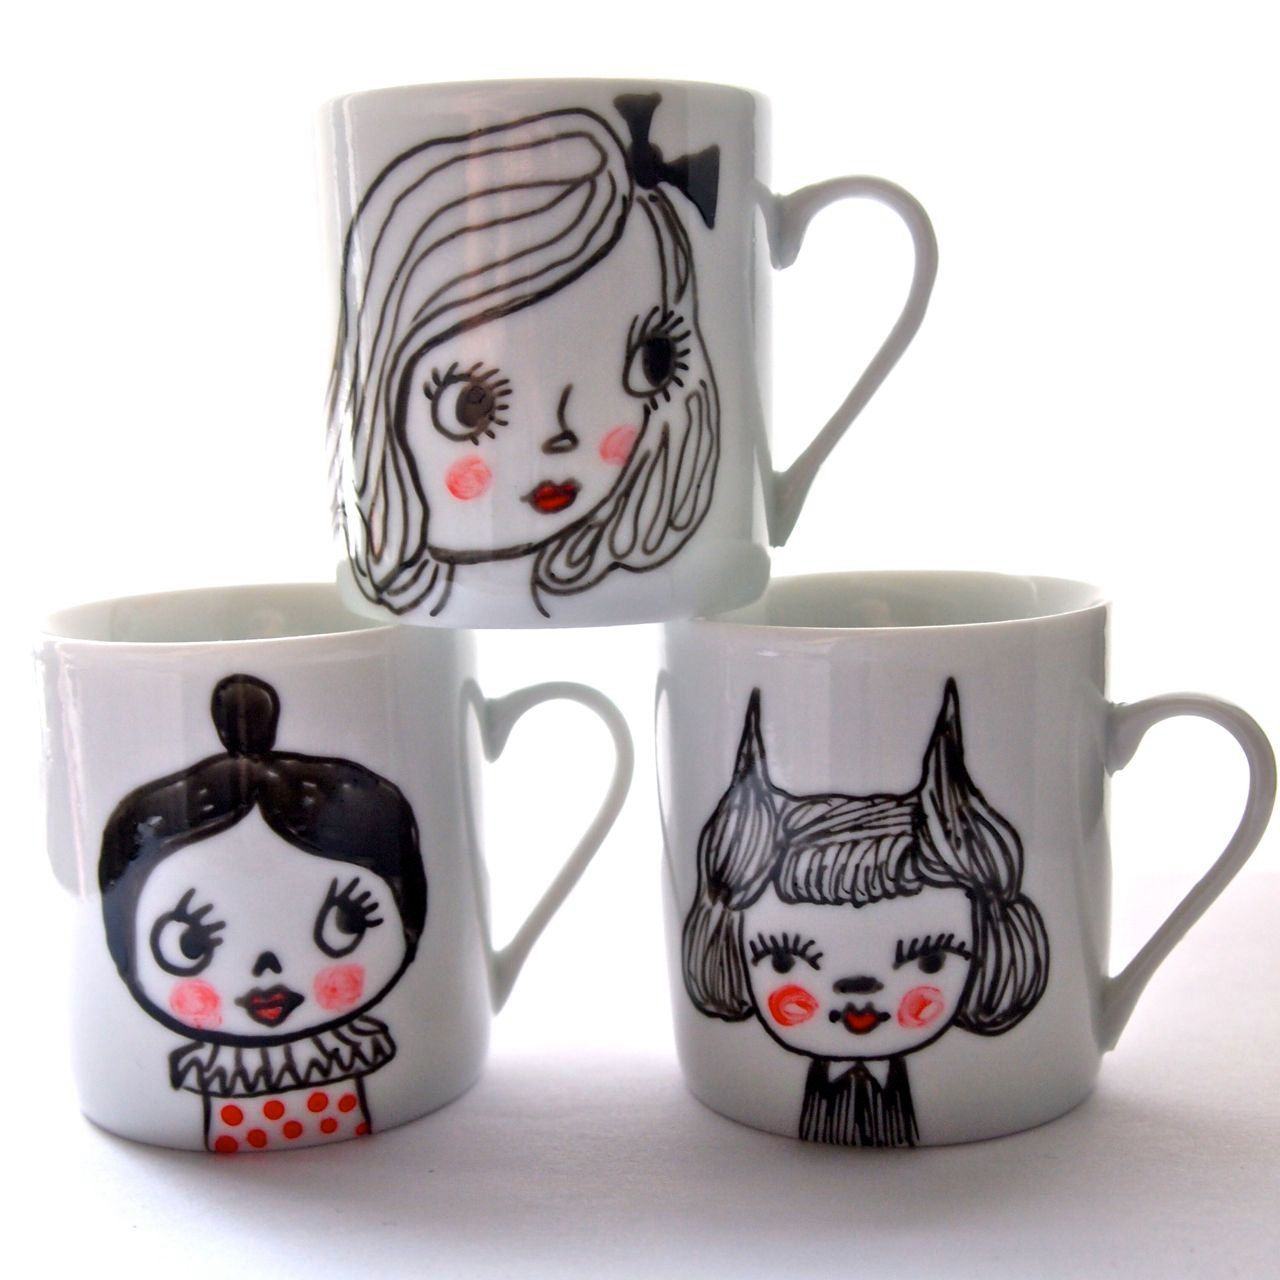 Hand painted mini mug hand drawn white porcelain mug cat girl and black cat. £6.50, via Etsy.